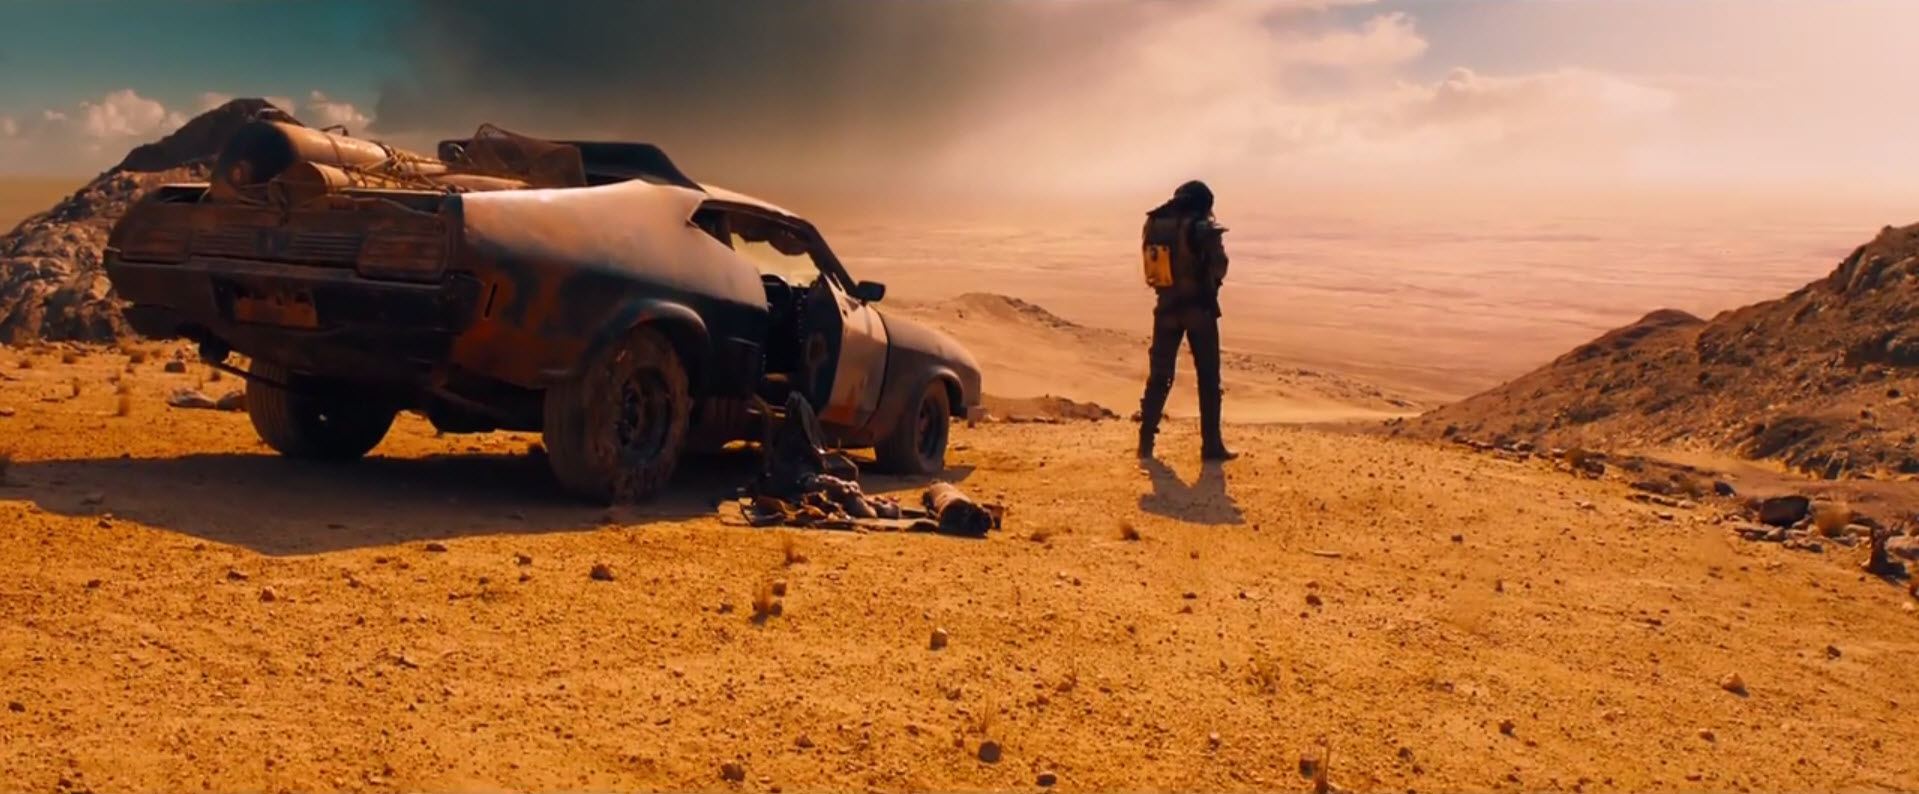 mad-max-wallpaper-18 jpg